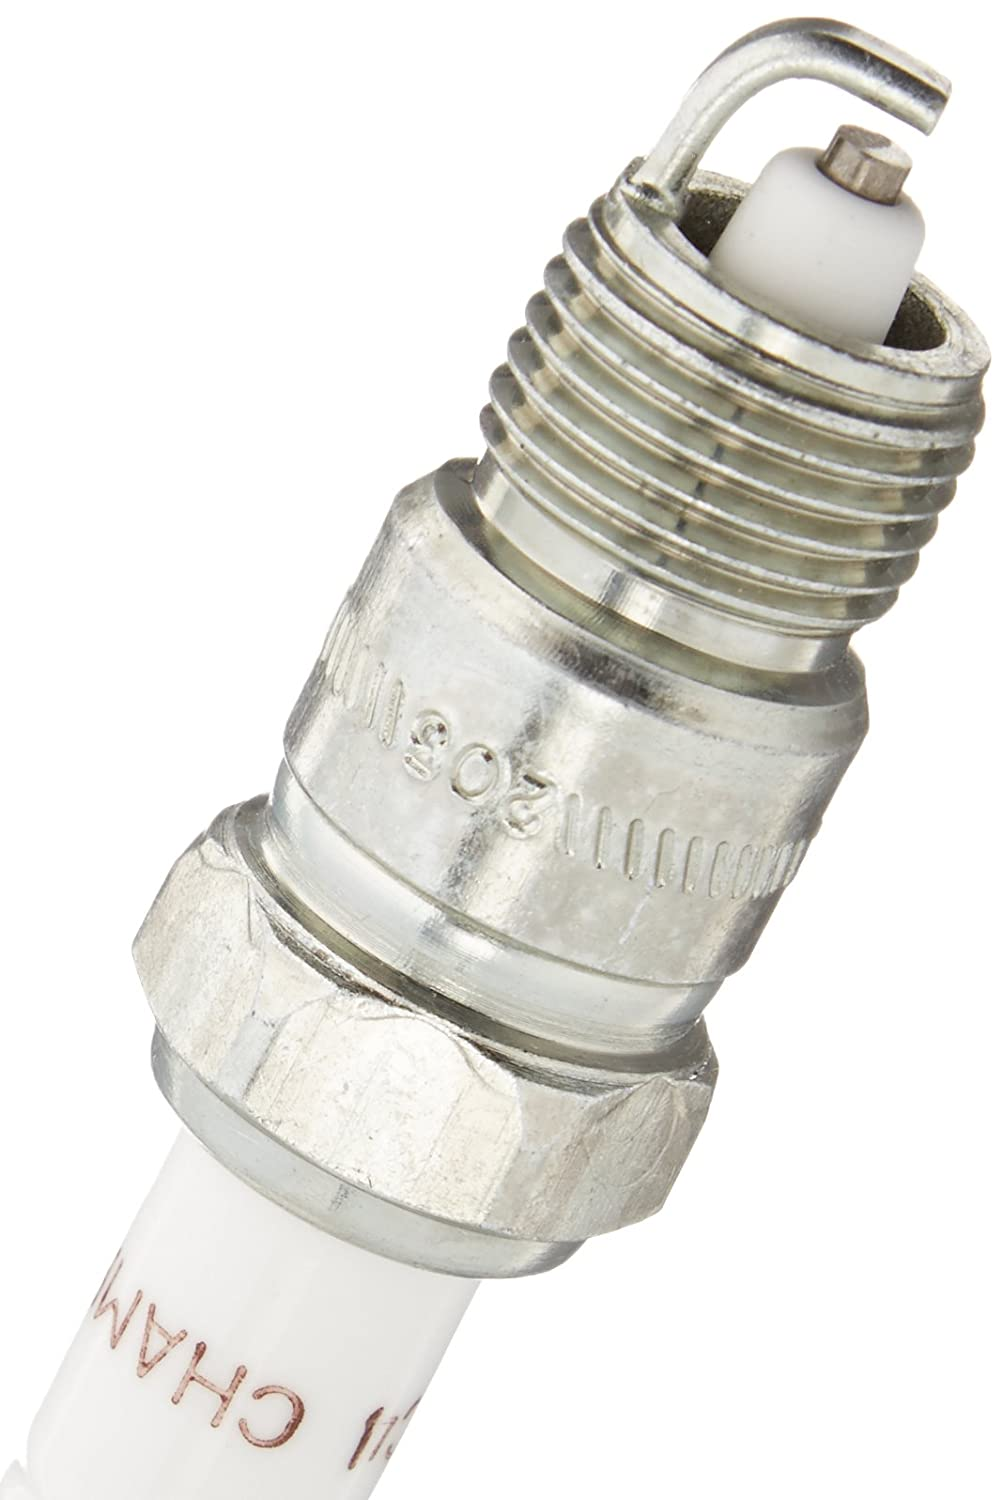 18S Champion Pack of 24 RV15YC4 S Traditional Spark Plug